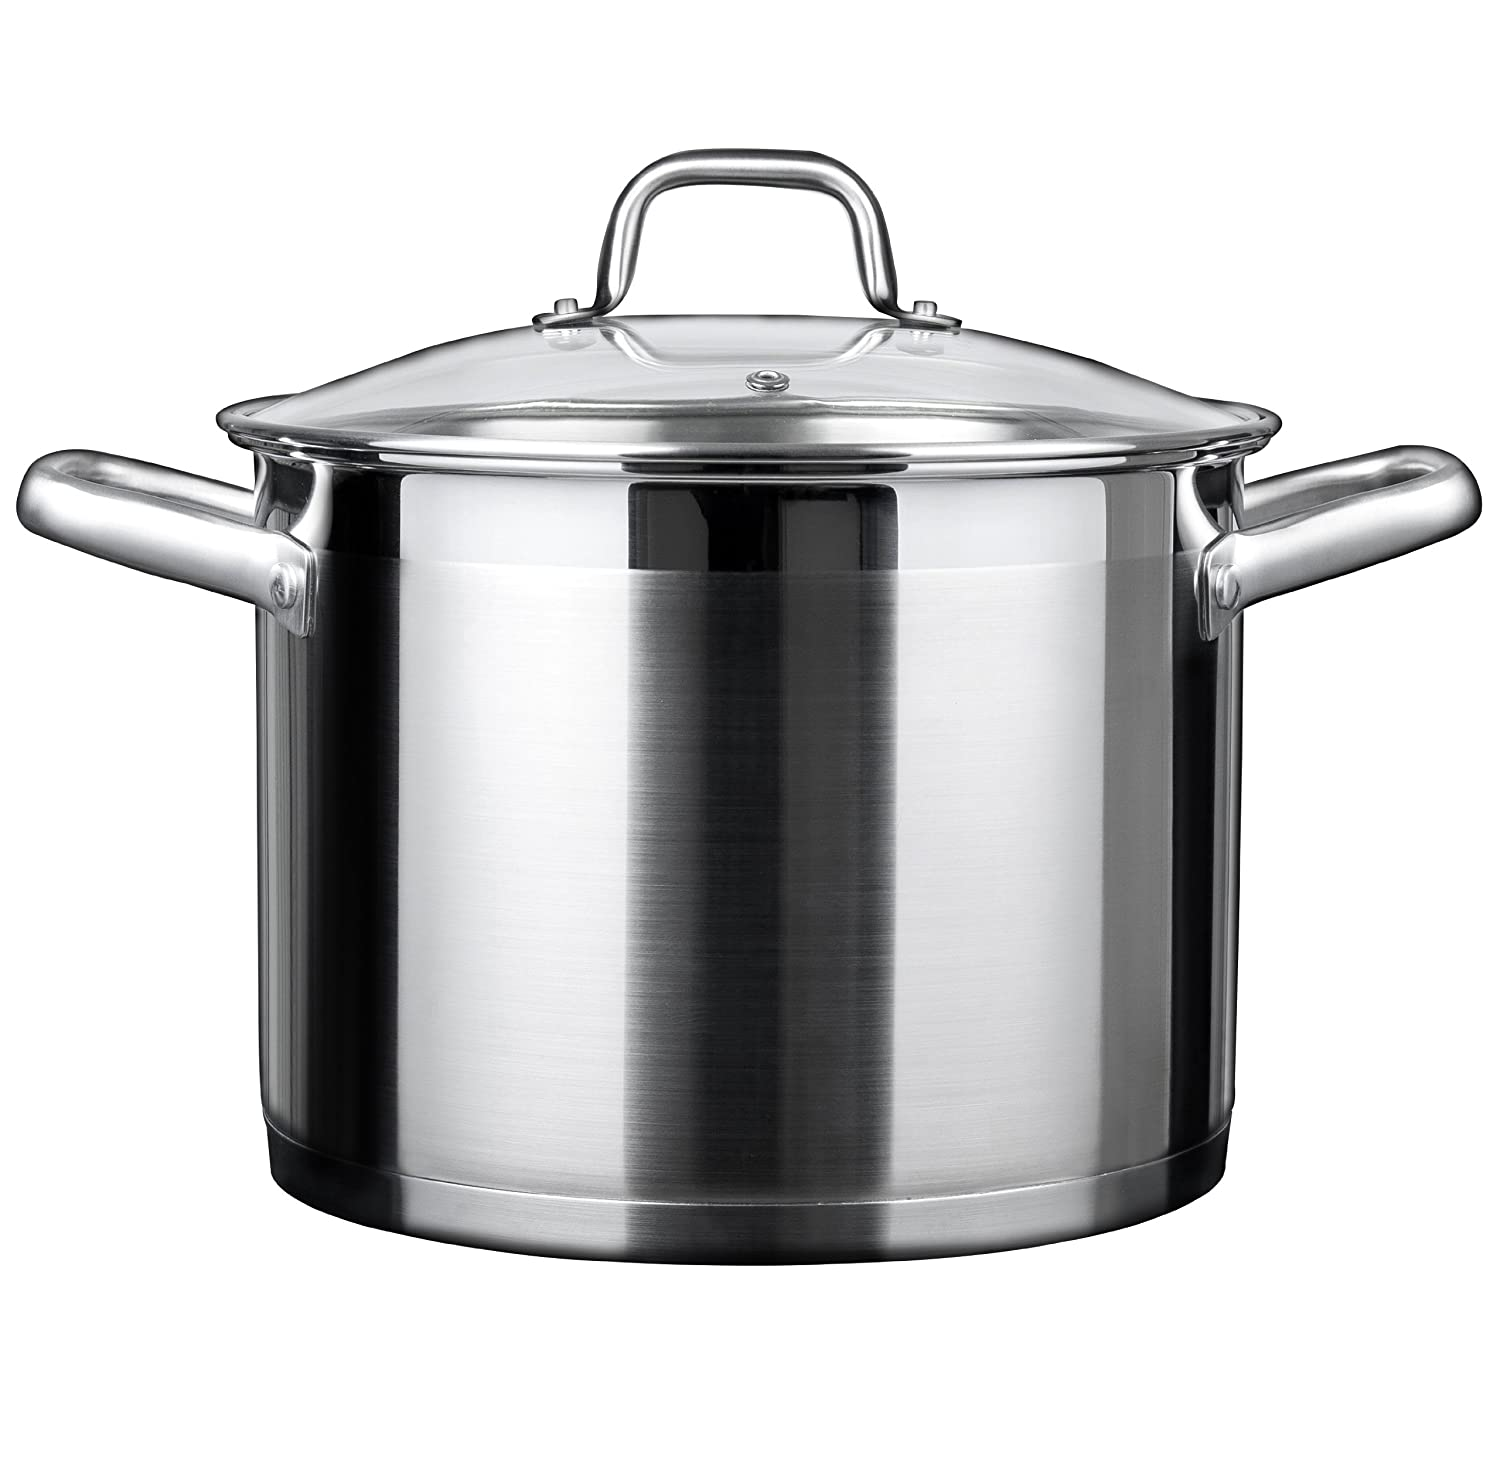 Duxtop Professional Stainless steel Cookware Induction Ready Impact-bonded Technology (8.6Qt StockPot)